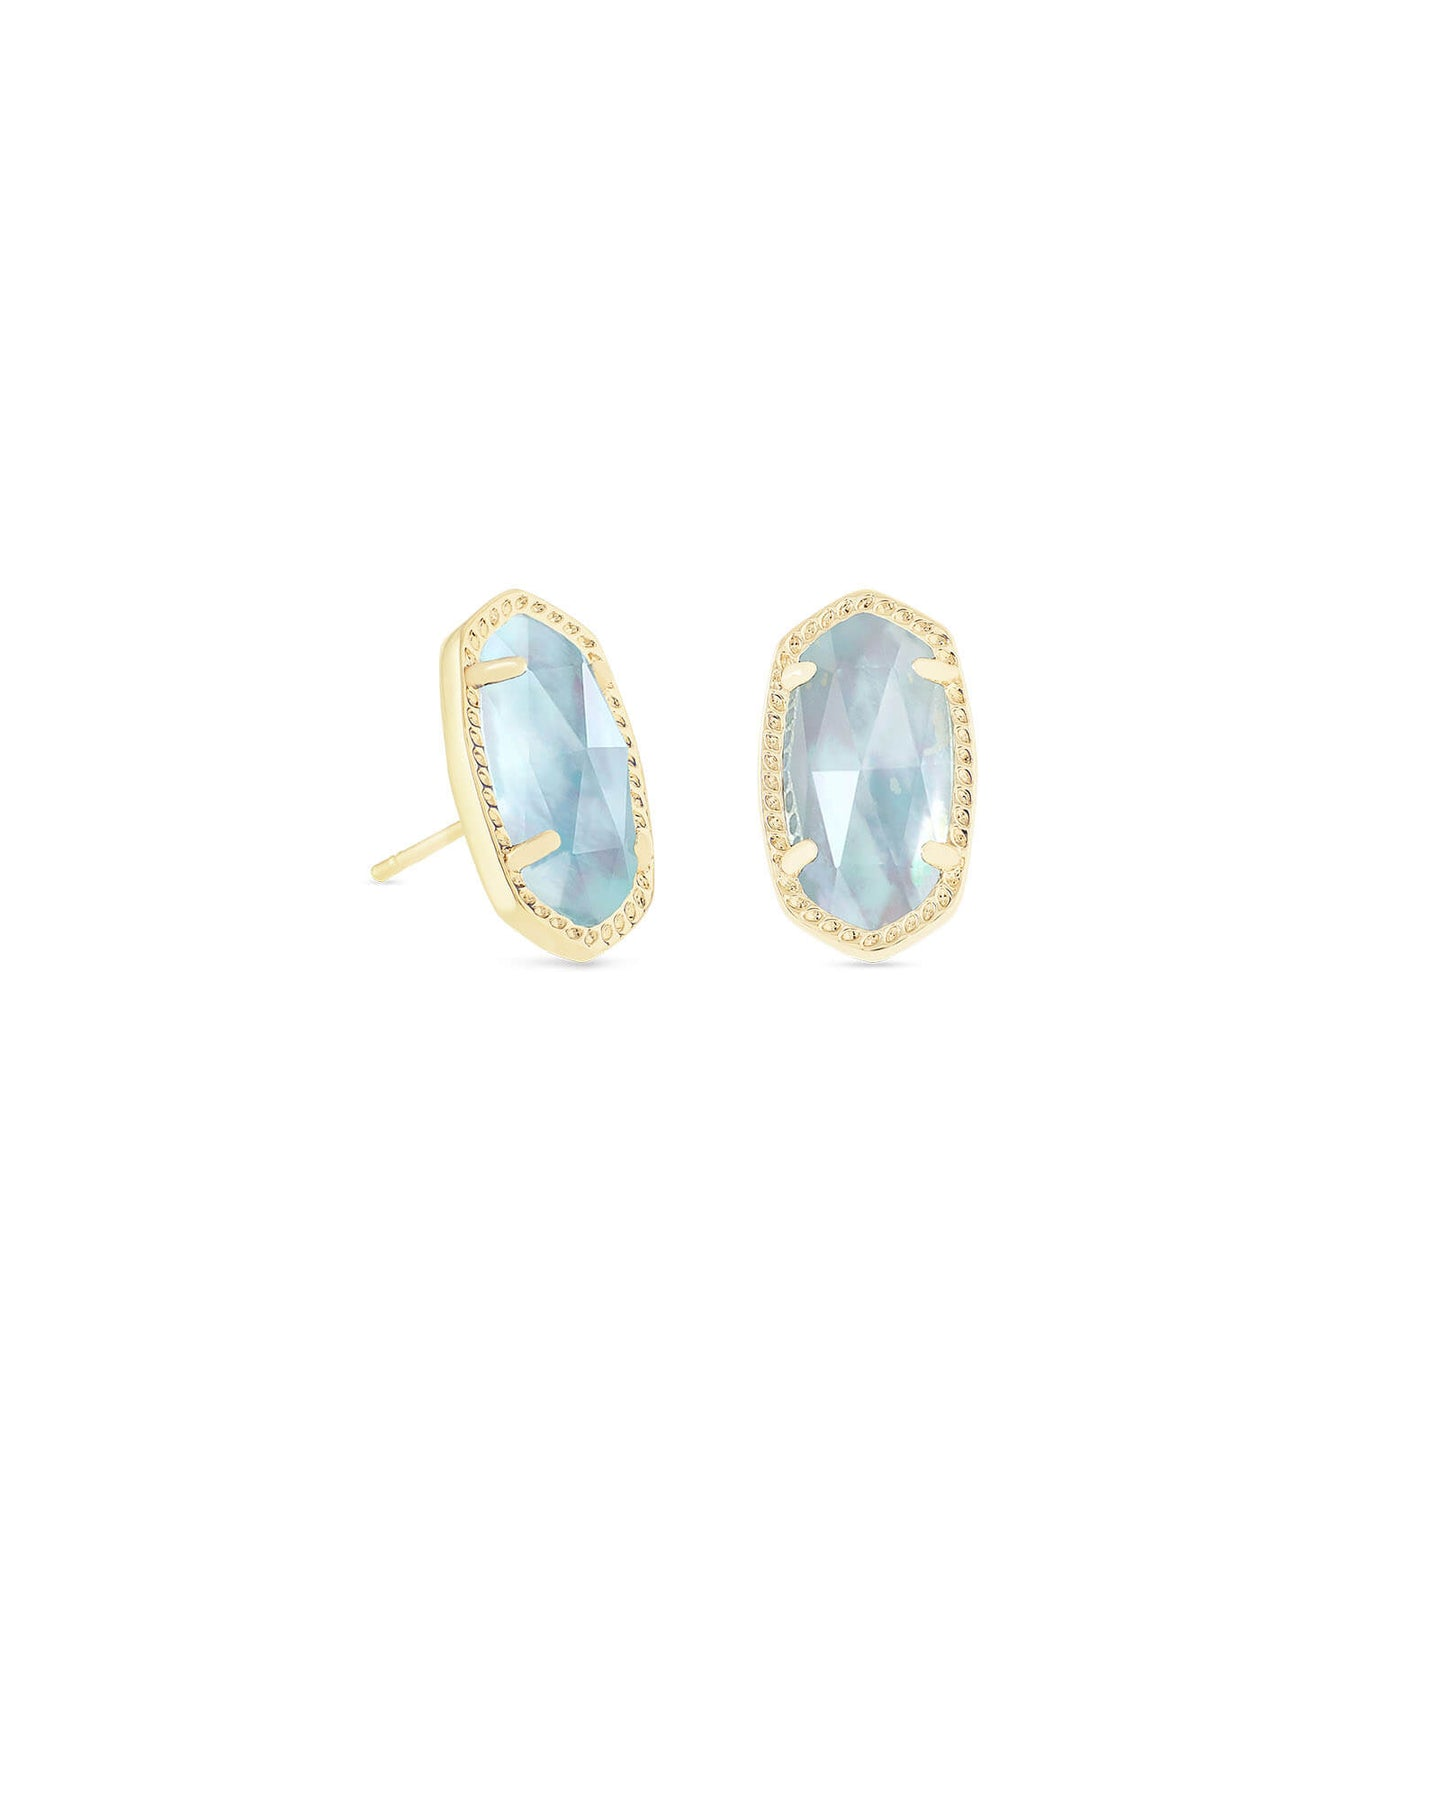 Kendra Scott Ellie Earring - Gold Light Blue Illusion